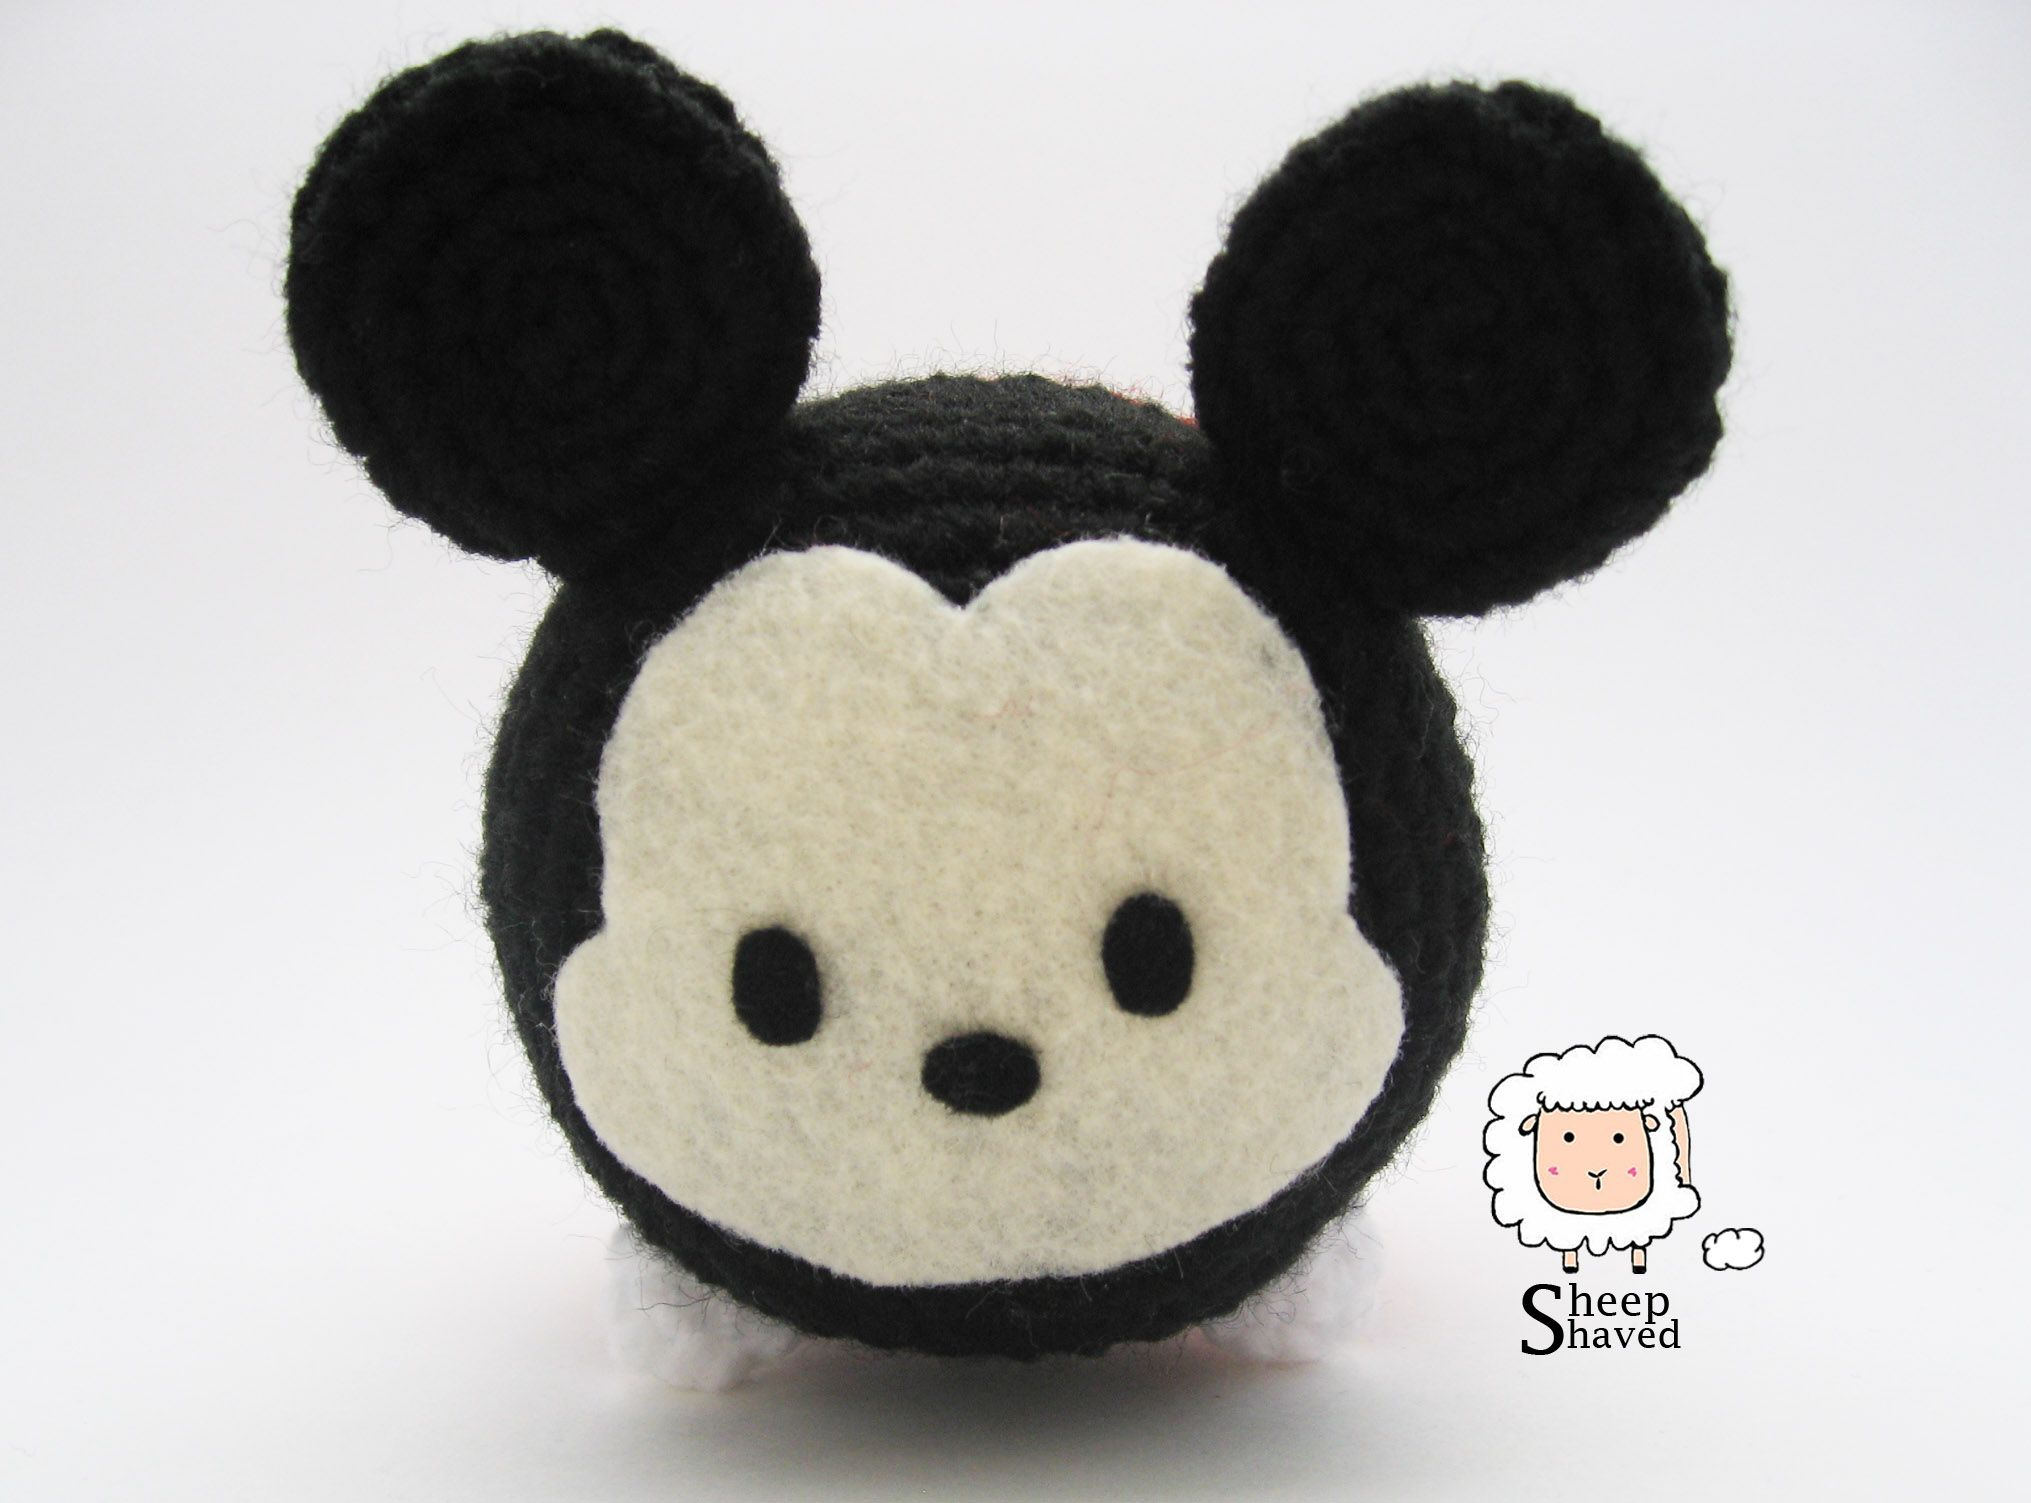 Crochet mickey mouse tsum tsum album on imgur crochet mickey mouse tsum tsum crochet pattern by sheep shaved bankloansurffo Choice Image